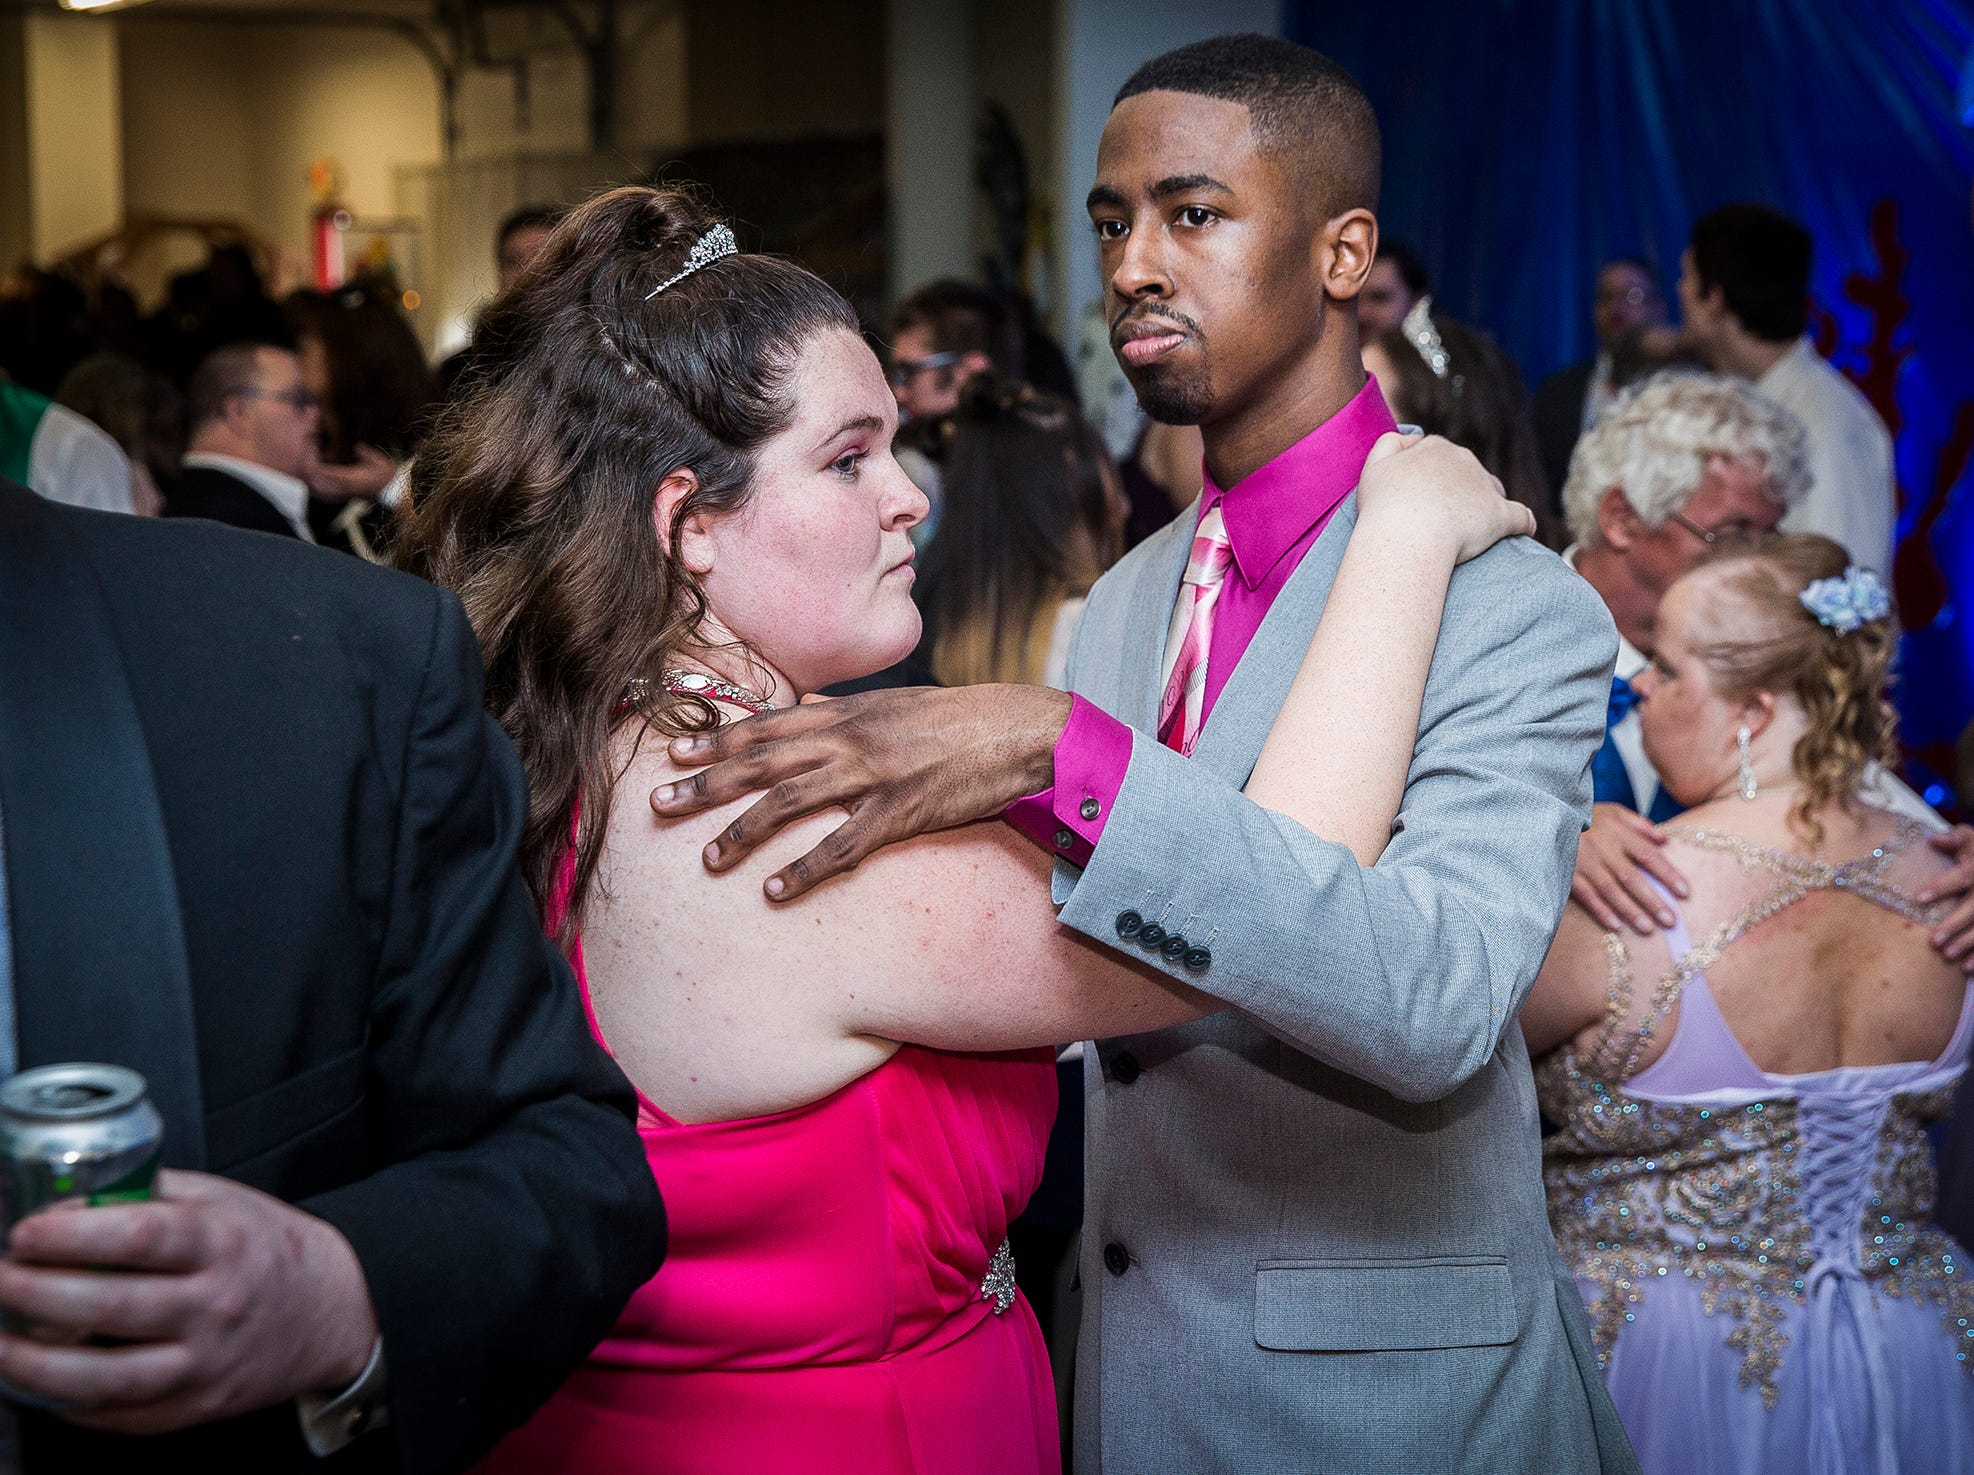 Local students, families and other community members celebrated the 2019 Delaware County Special Needs Prom at the Delaware County Fairgrounds Saturday evening.  The Disney-themed event featured costumed volunteers, food, drinks and a live DJ. Each year, the Special Needs Prom has relocated due to the increasing size of the event. The prom requires outside donations in order to occur each year - interested donors can find more information at https://delcospecialneedsprom.org.